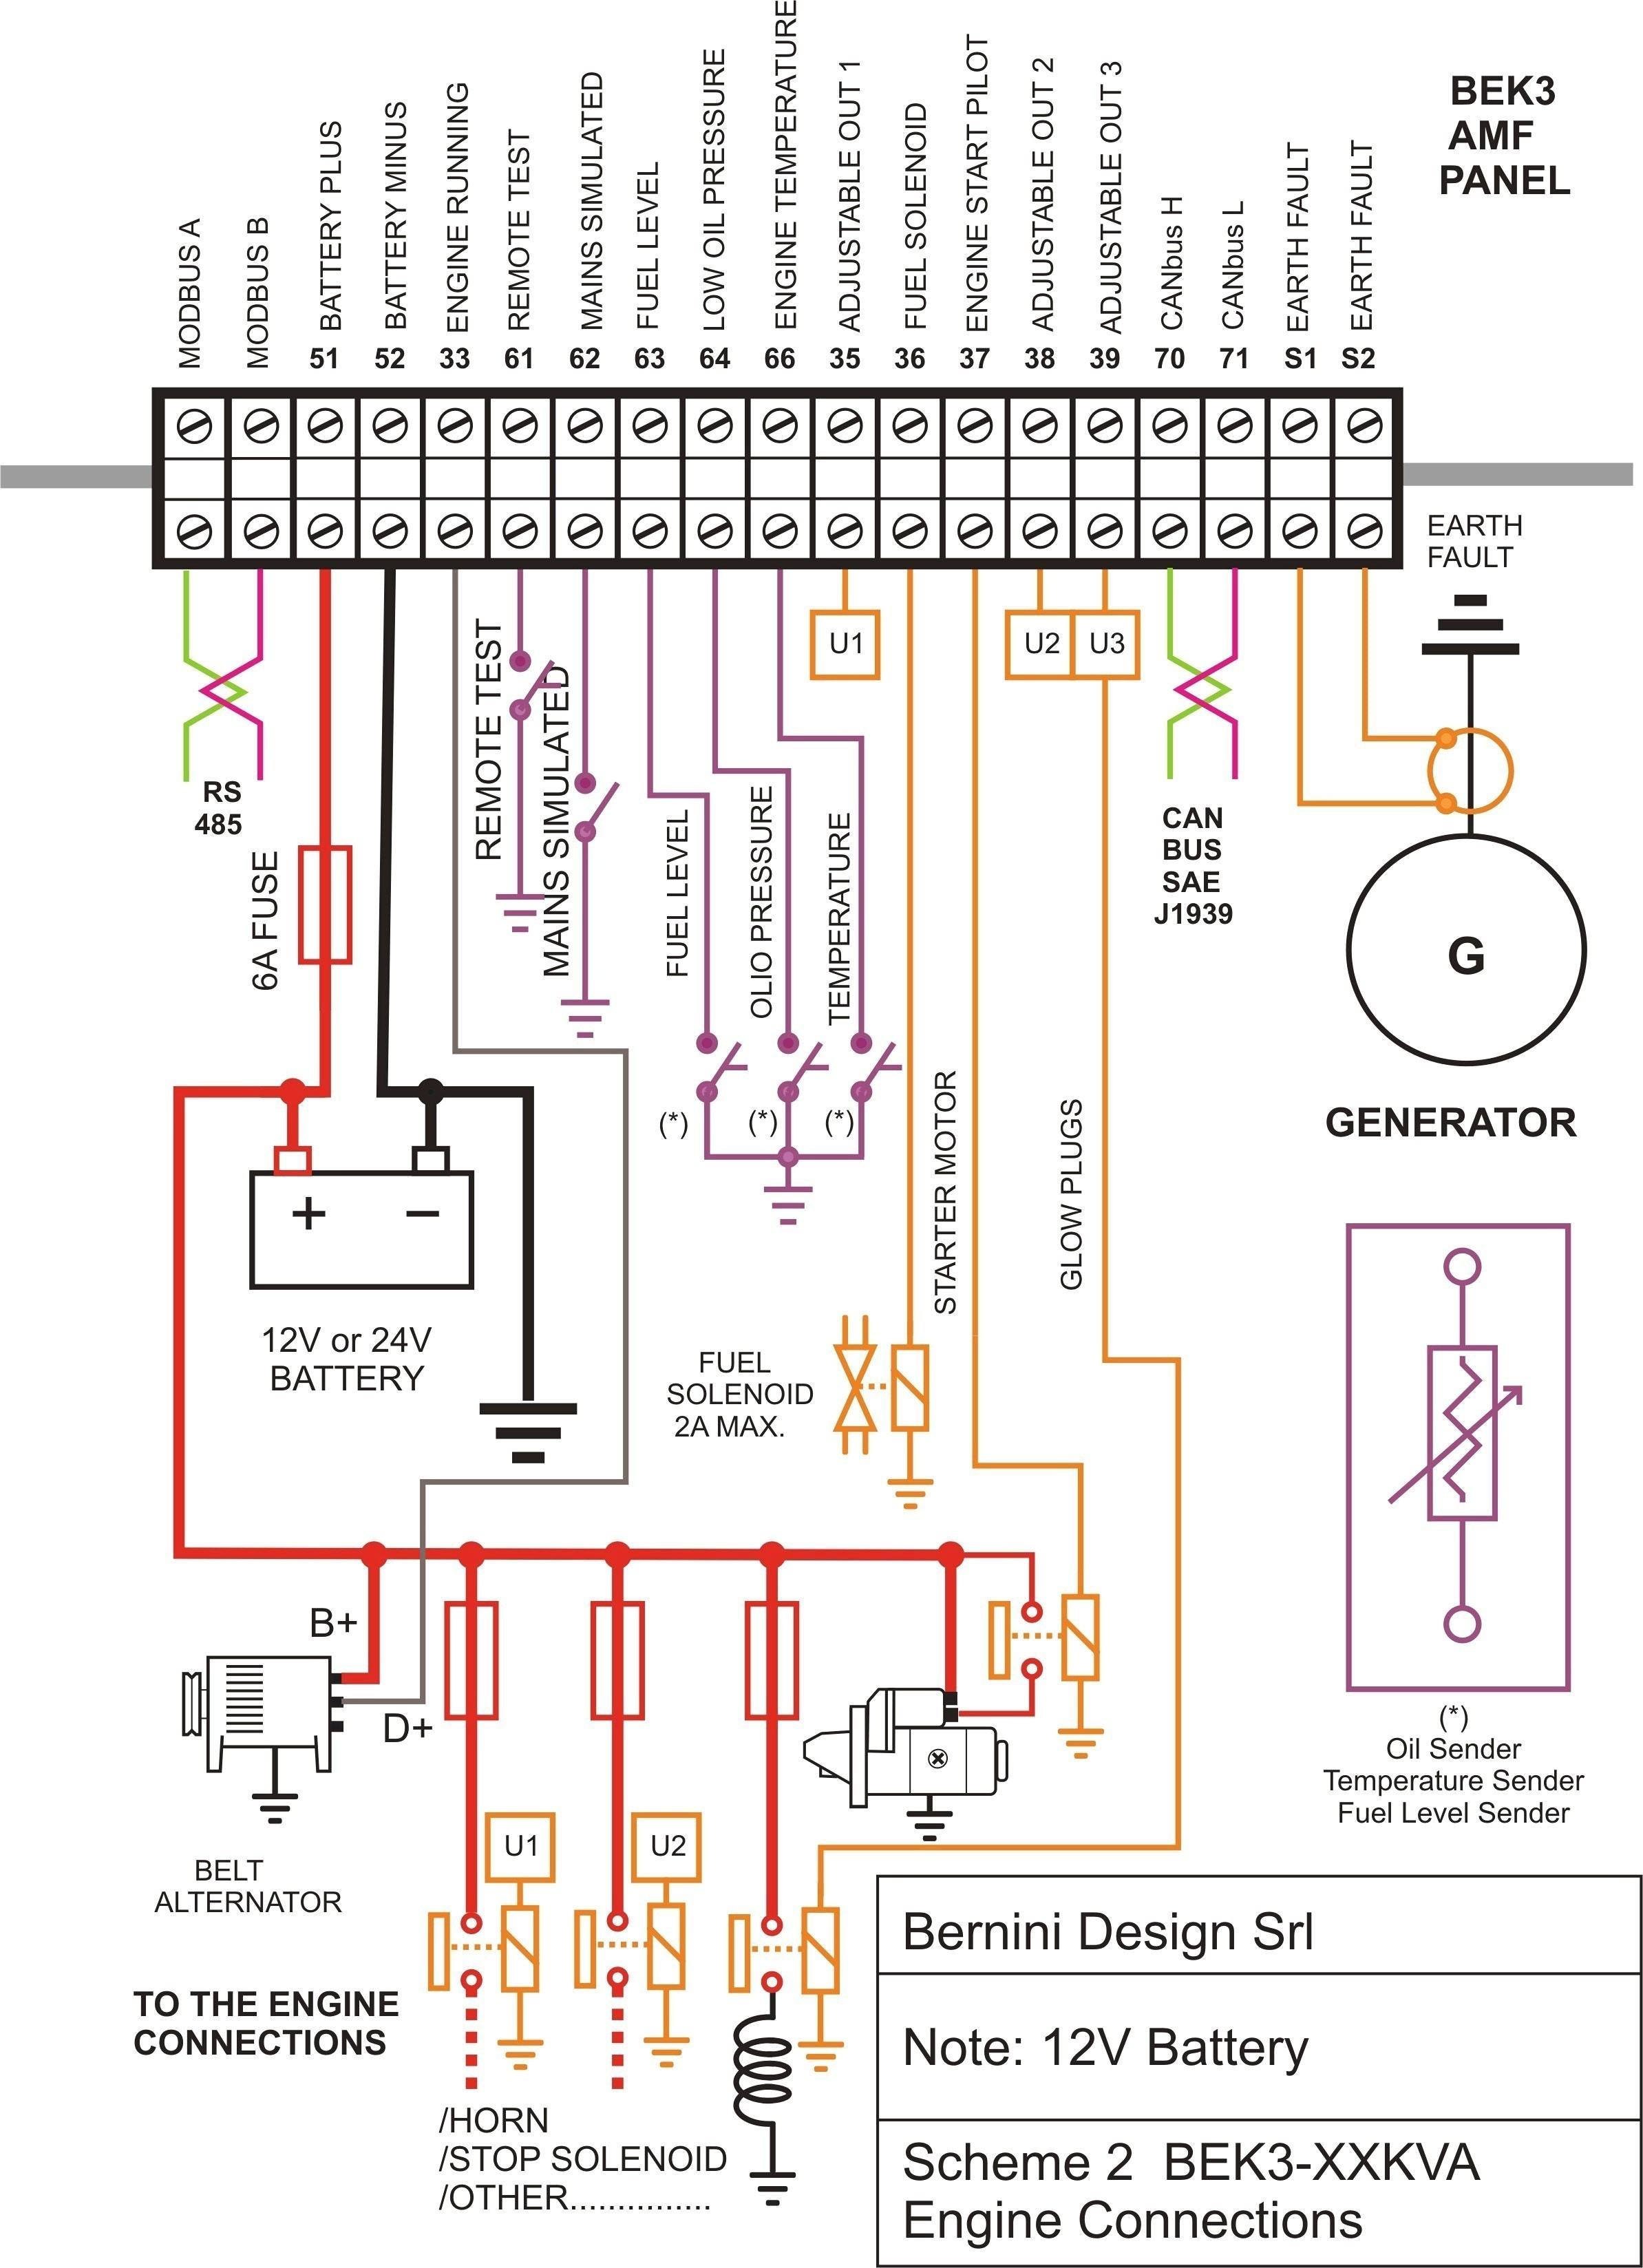 Electrical Wiring Diagrams Best Electrical Diagram for House Unique Best Wiring Diagram Od Rv Park